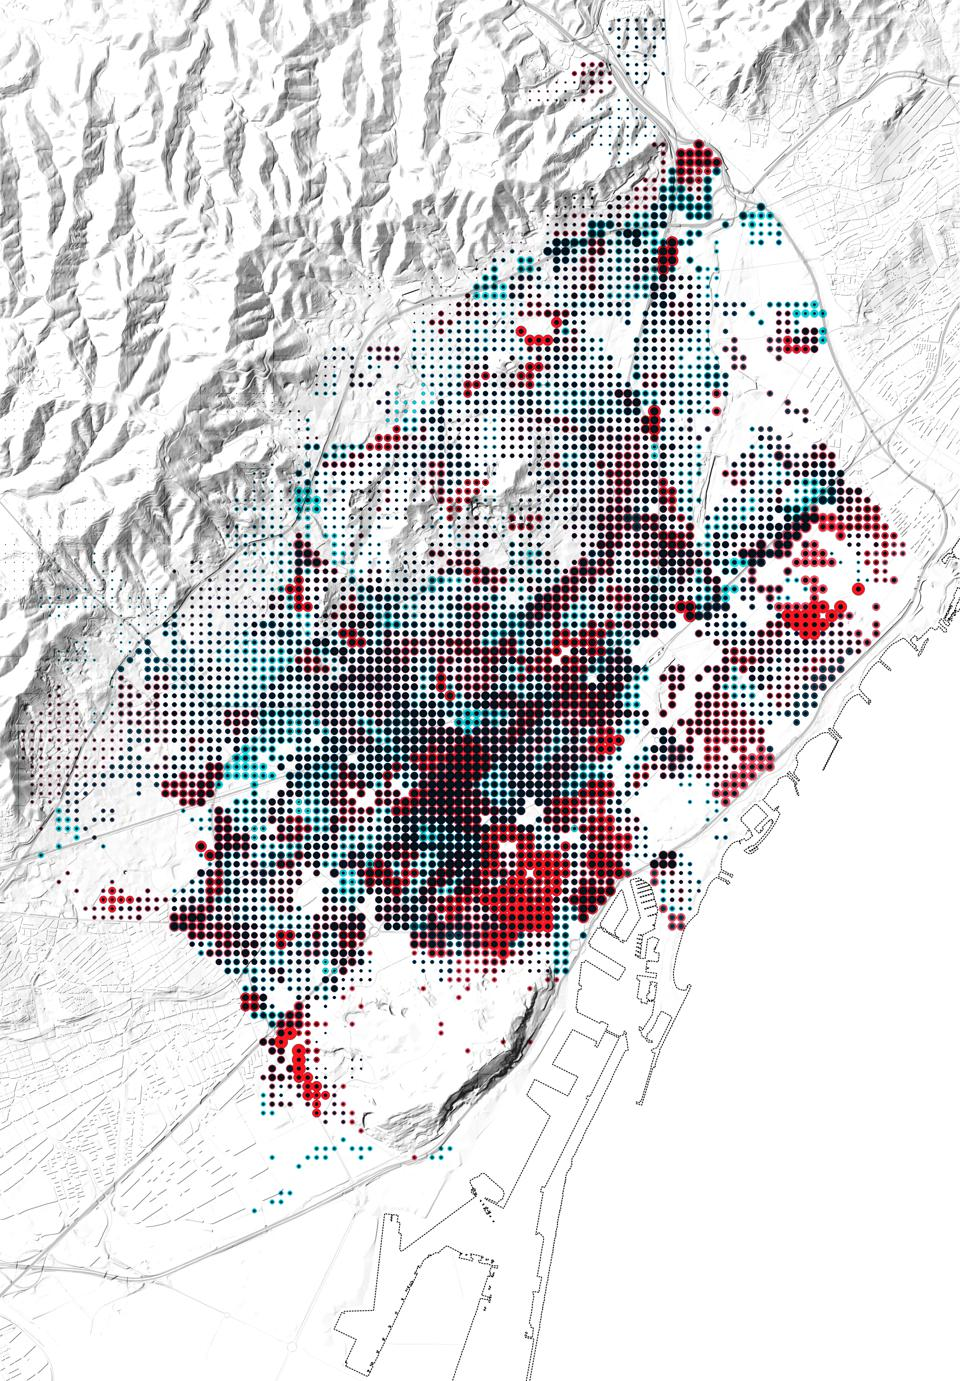 The impact of air pollution on human's health in Barcelona, mapped.